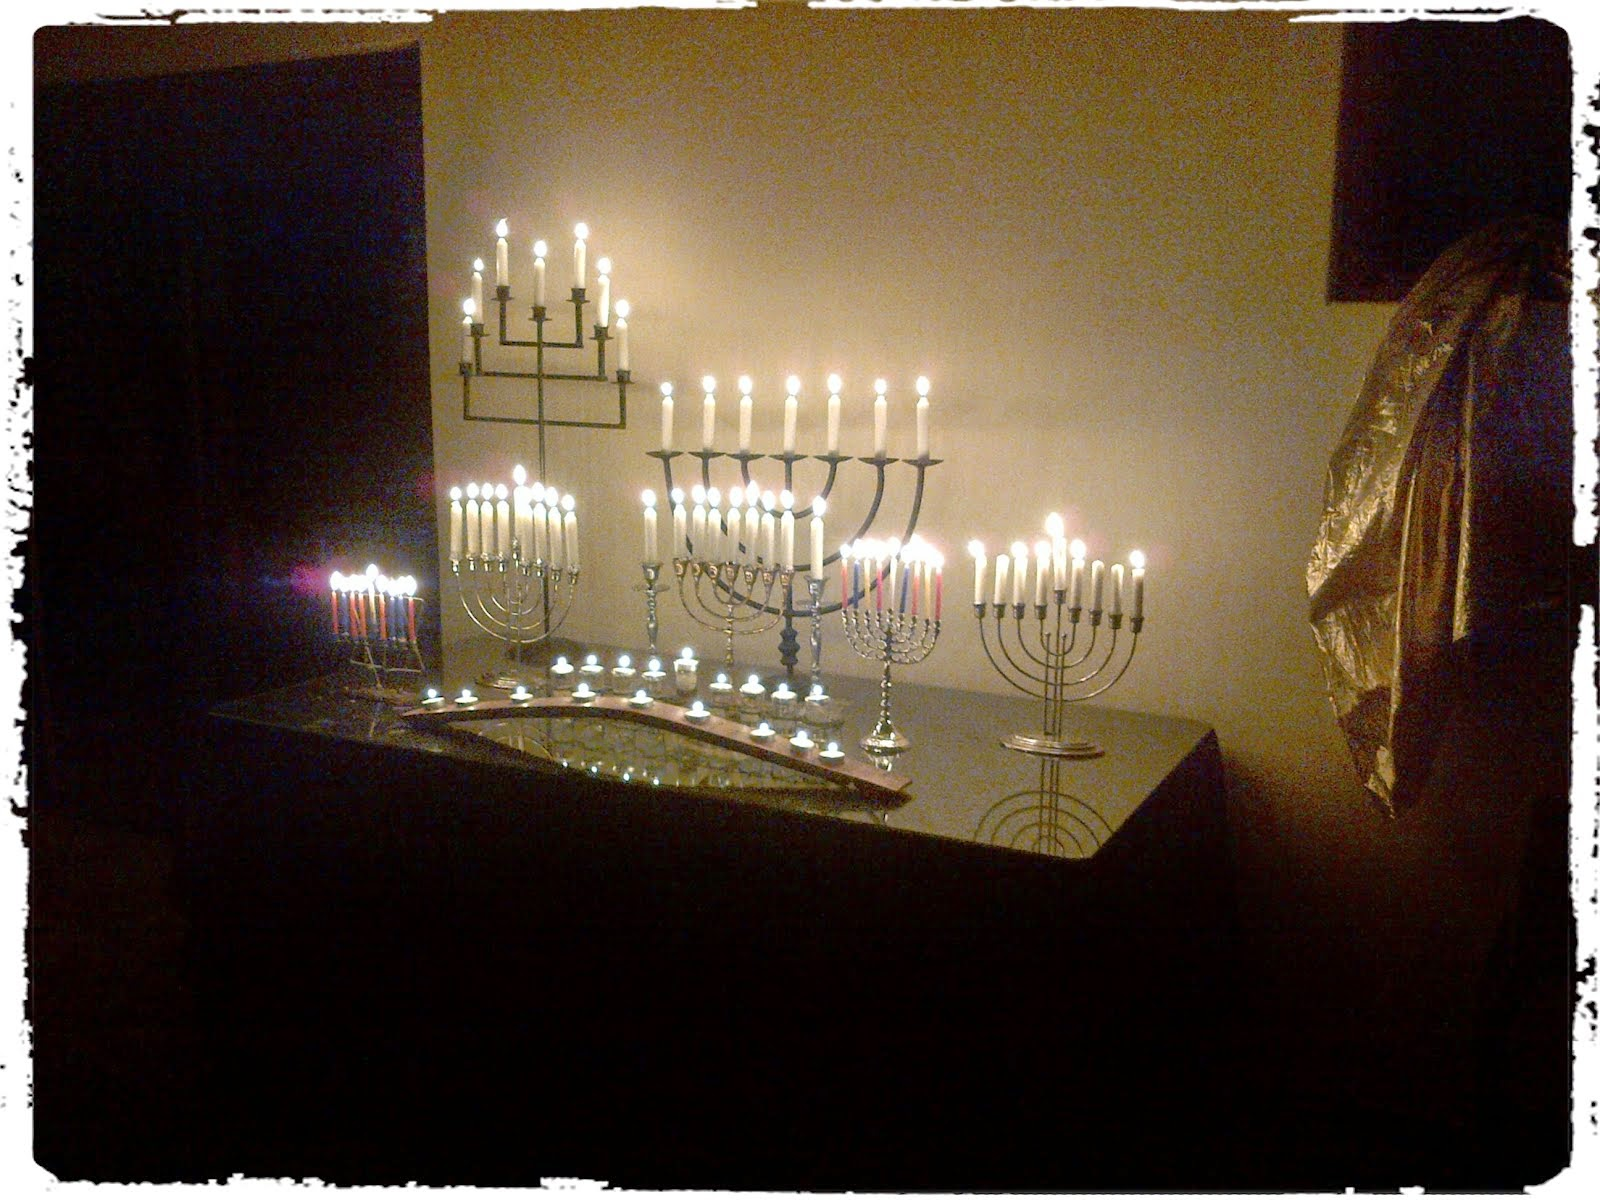 All the channukiahs and menohras are burning on this last evening of Channukah